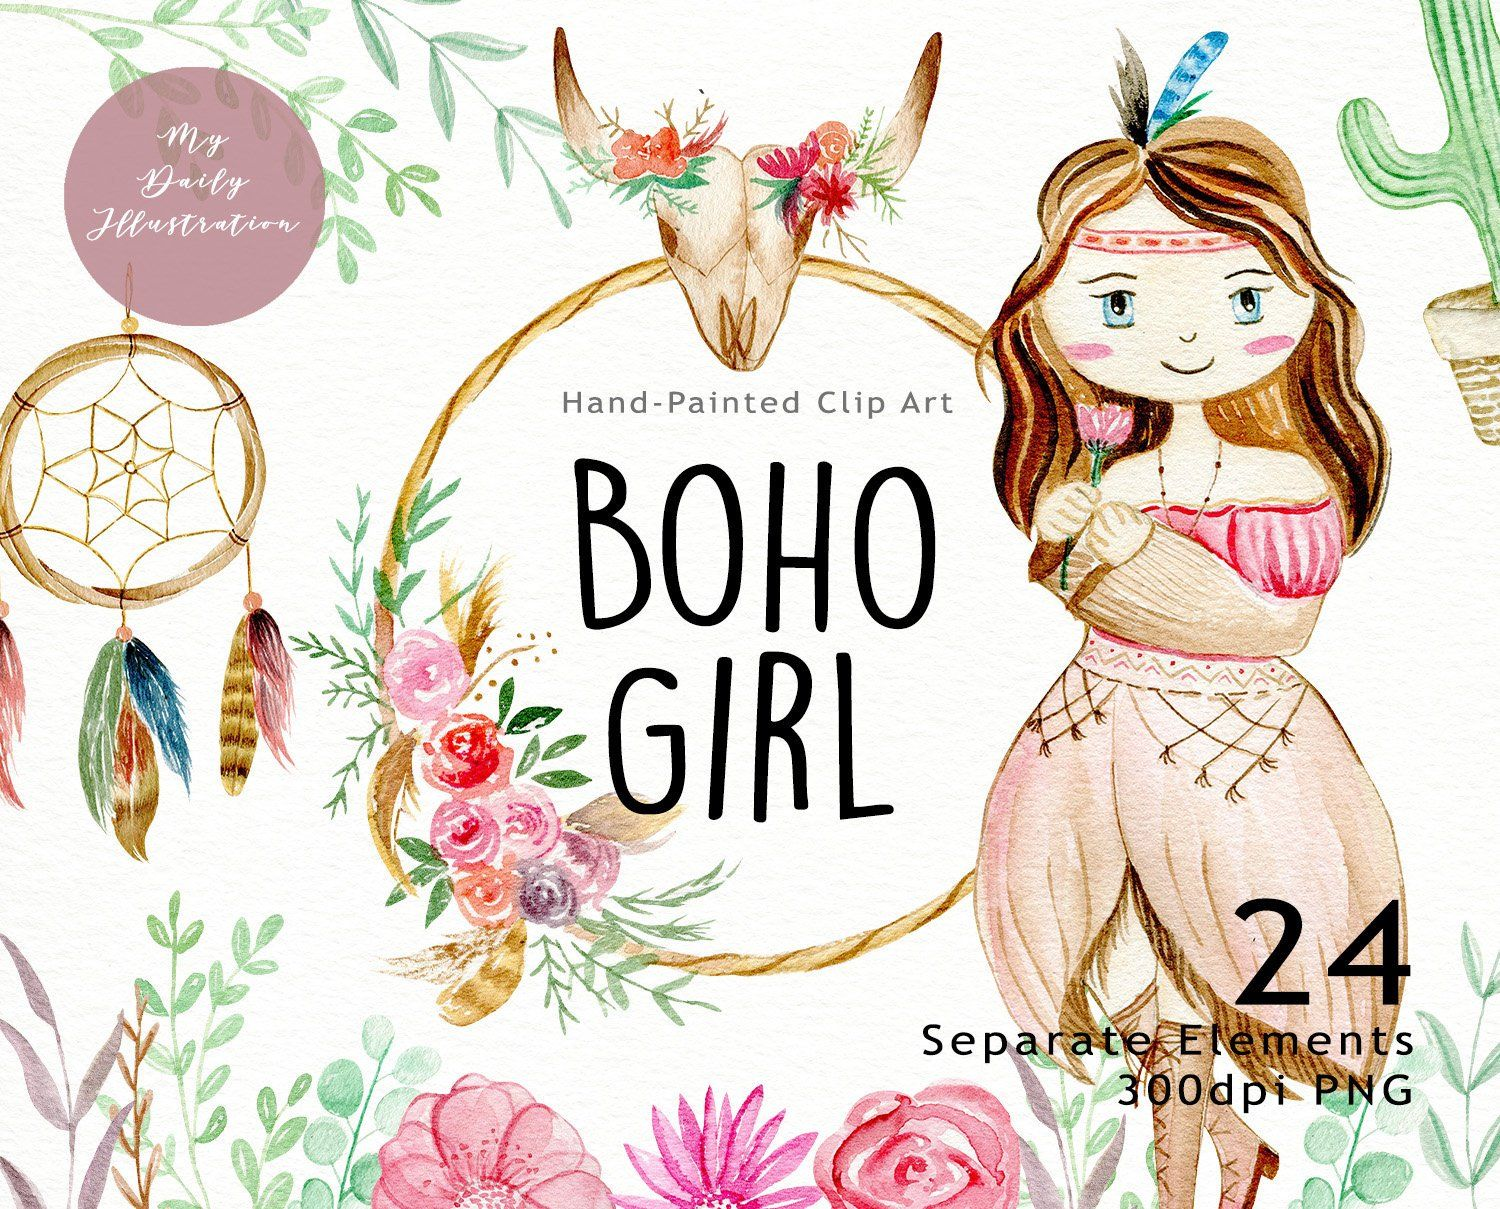 Boho girl clipart banner free download Watercolor boho girl clipart set for t-shirt design and other small ... banner free download